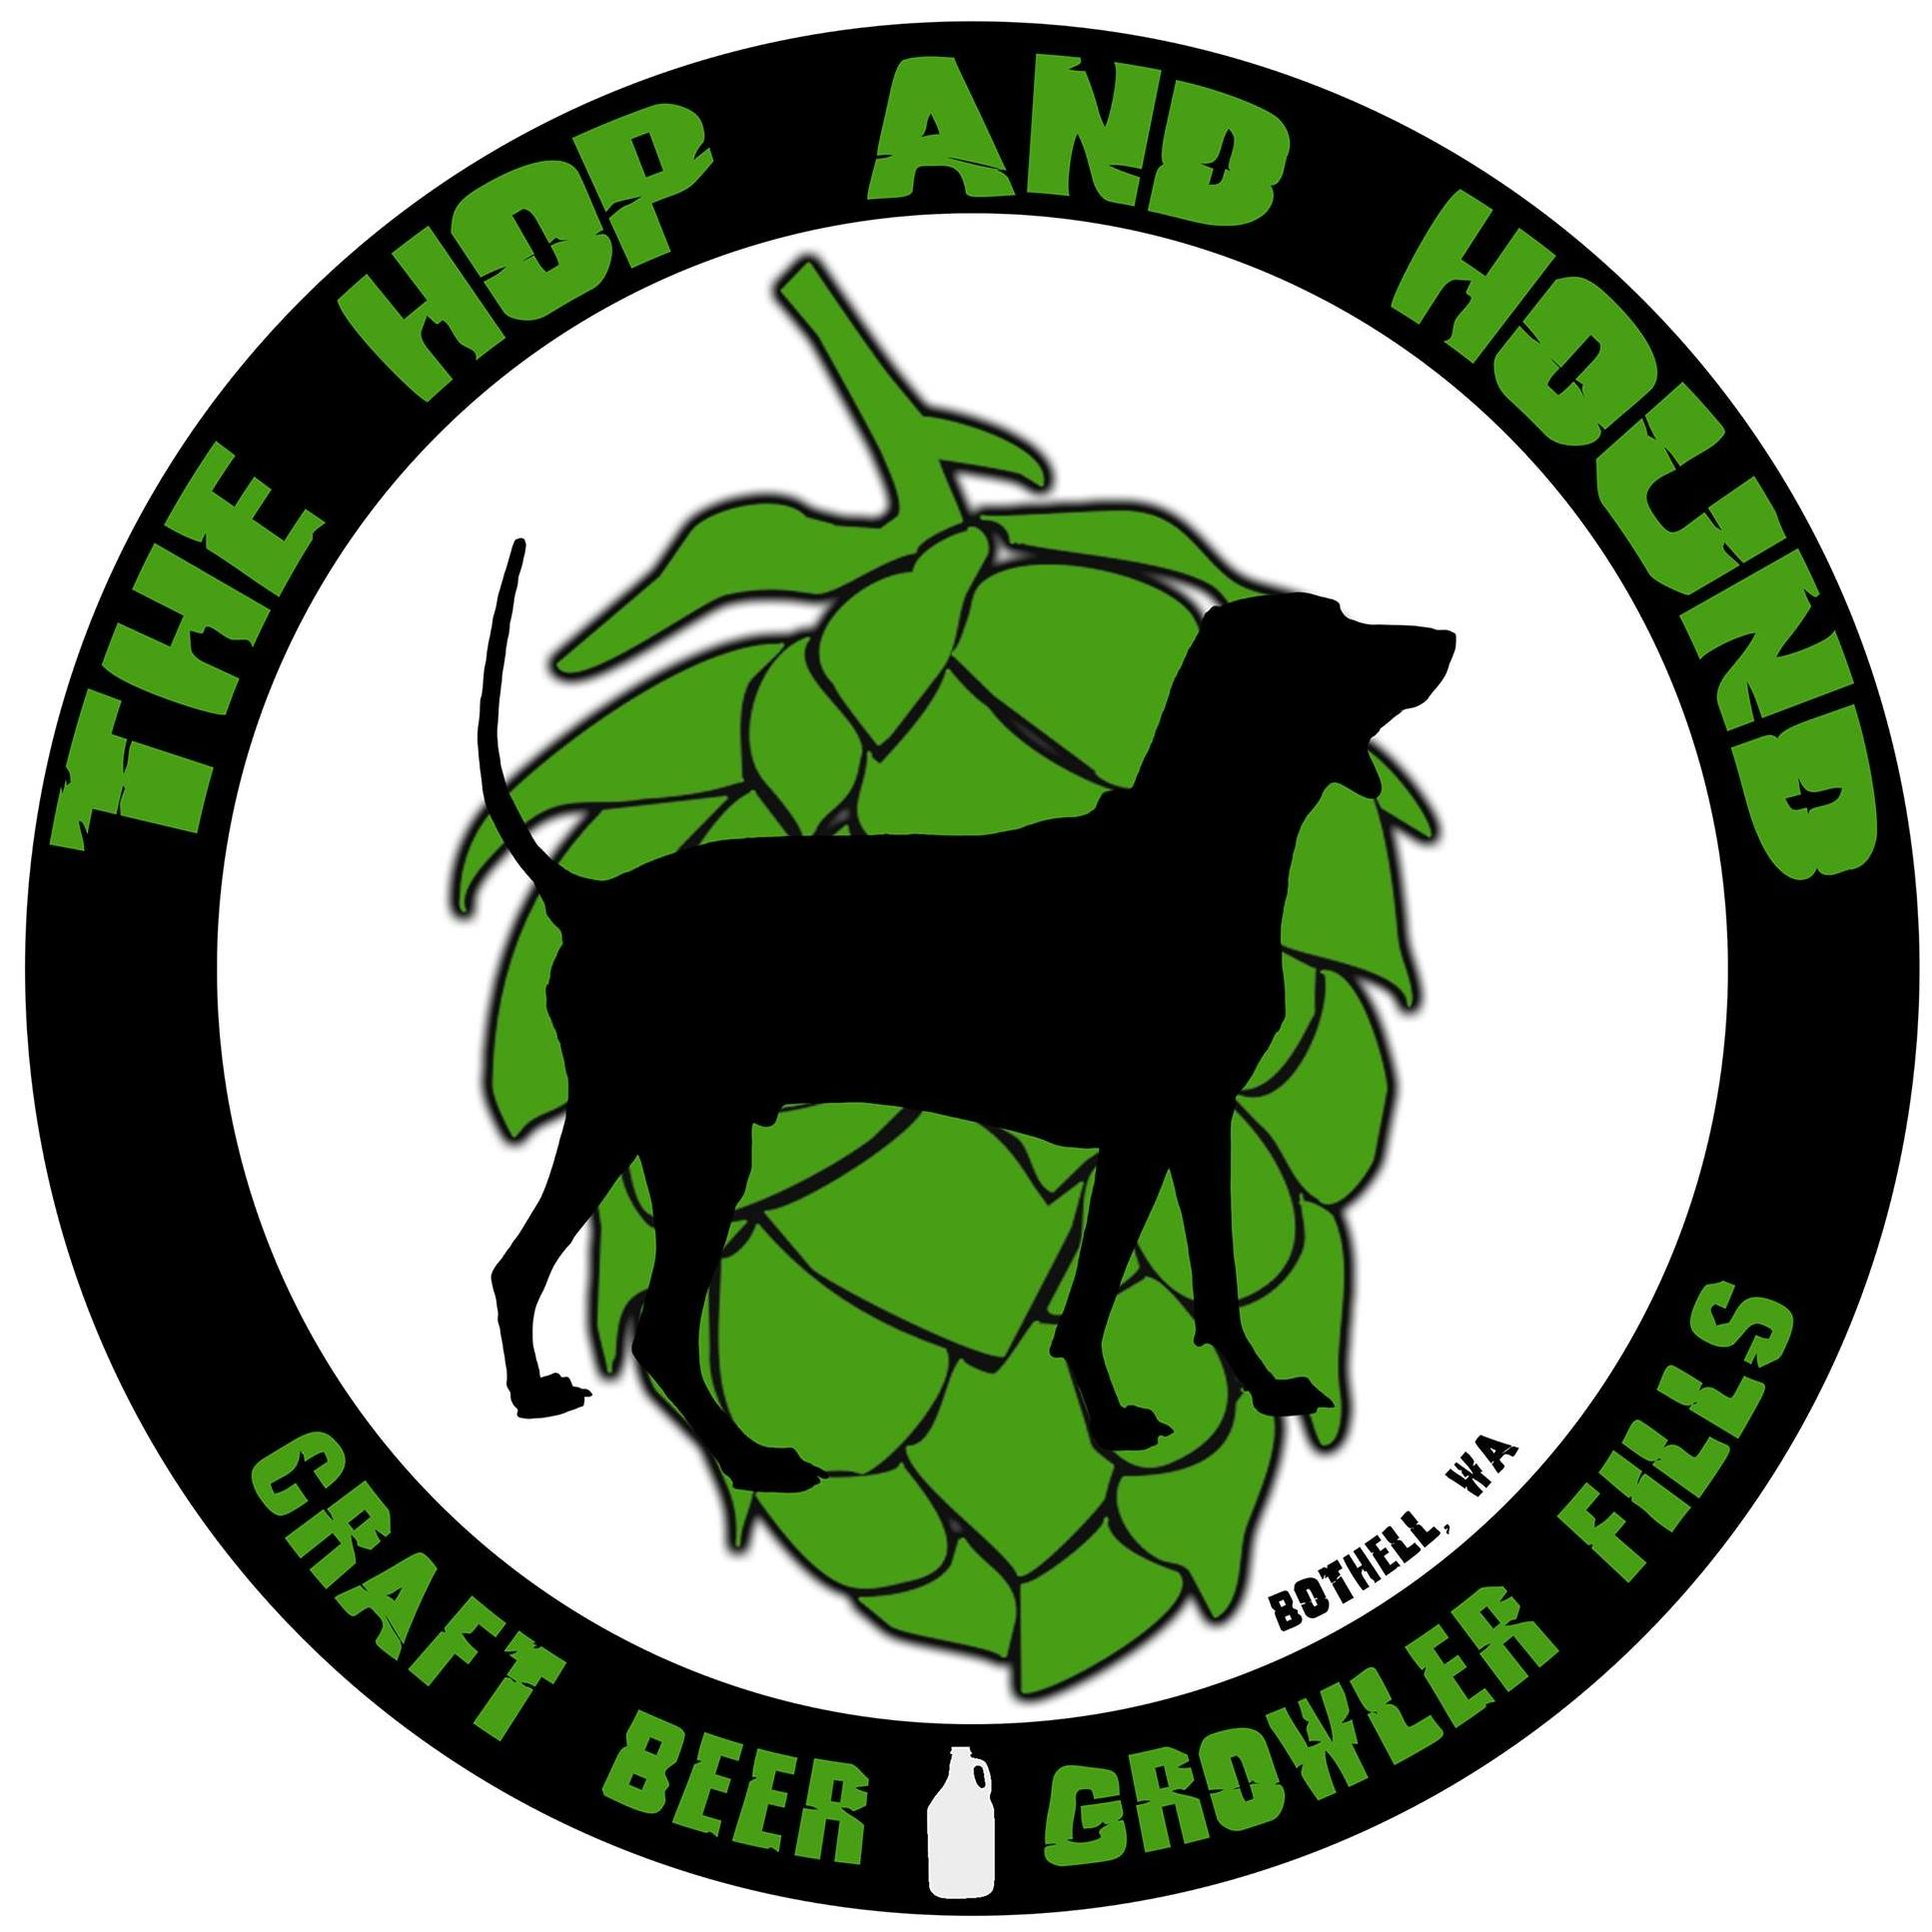 Company logo of The Hop and Hound - Craft Beer Bar